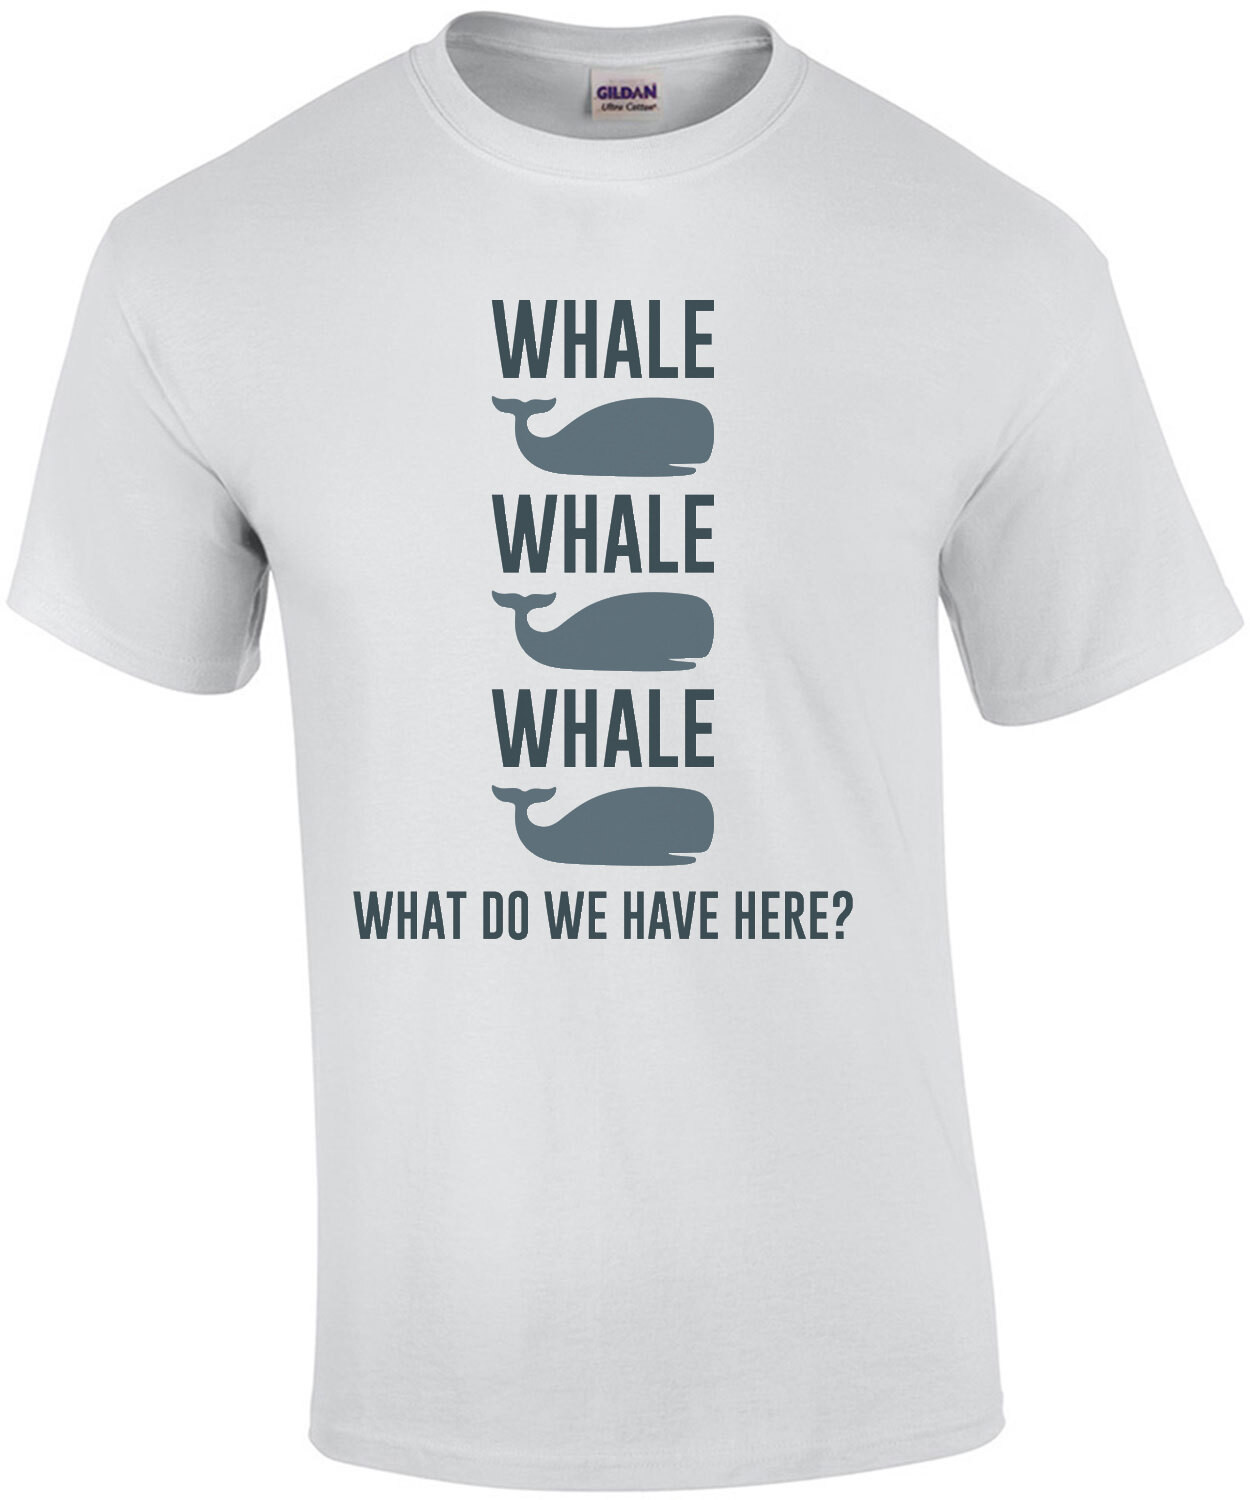 Whale Whale Whale - What do we have here - funny pun t-shirt